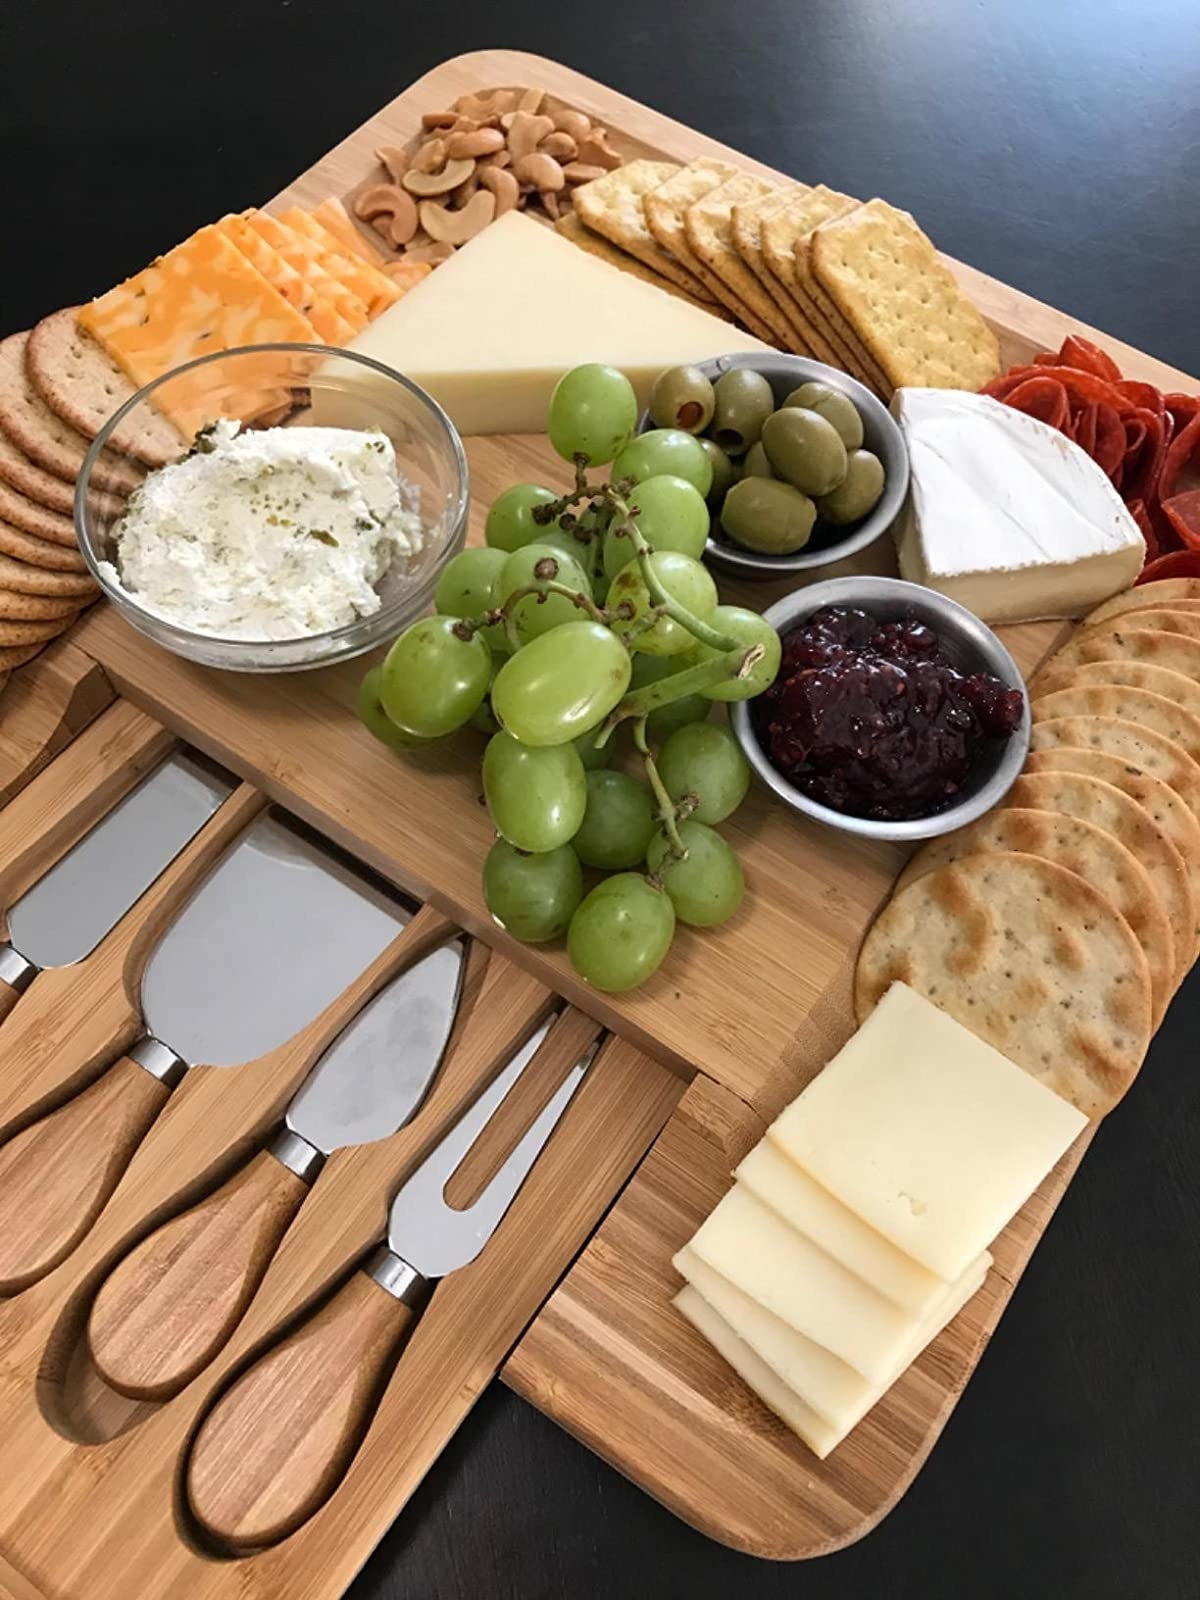 reviewer's wooden board with grooves for crackers and a knife drawer that slides out, filled with cheese, crackers, and fruit